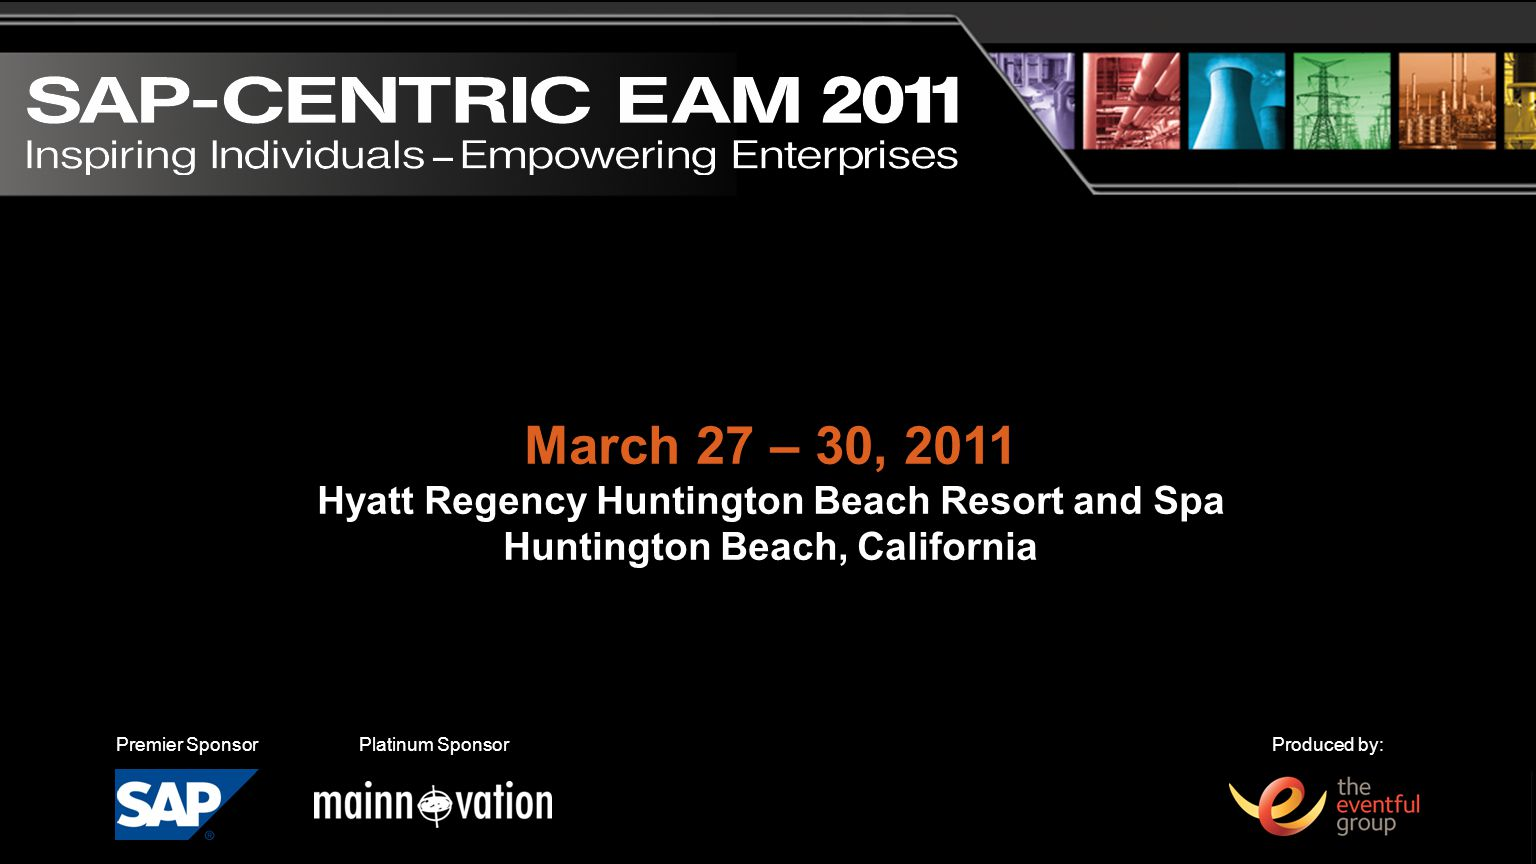 March 27 – 30, 2011 Hyatt Regency Huntington Beach Resort and Spa